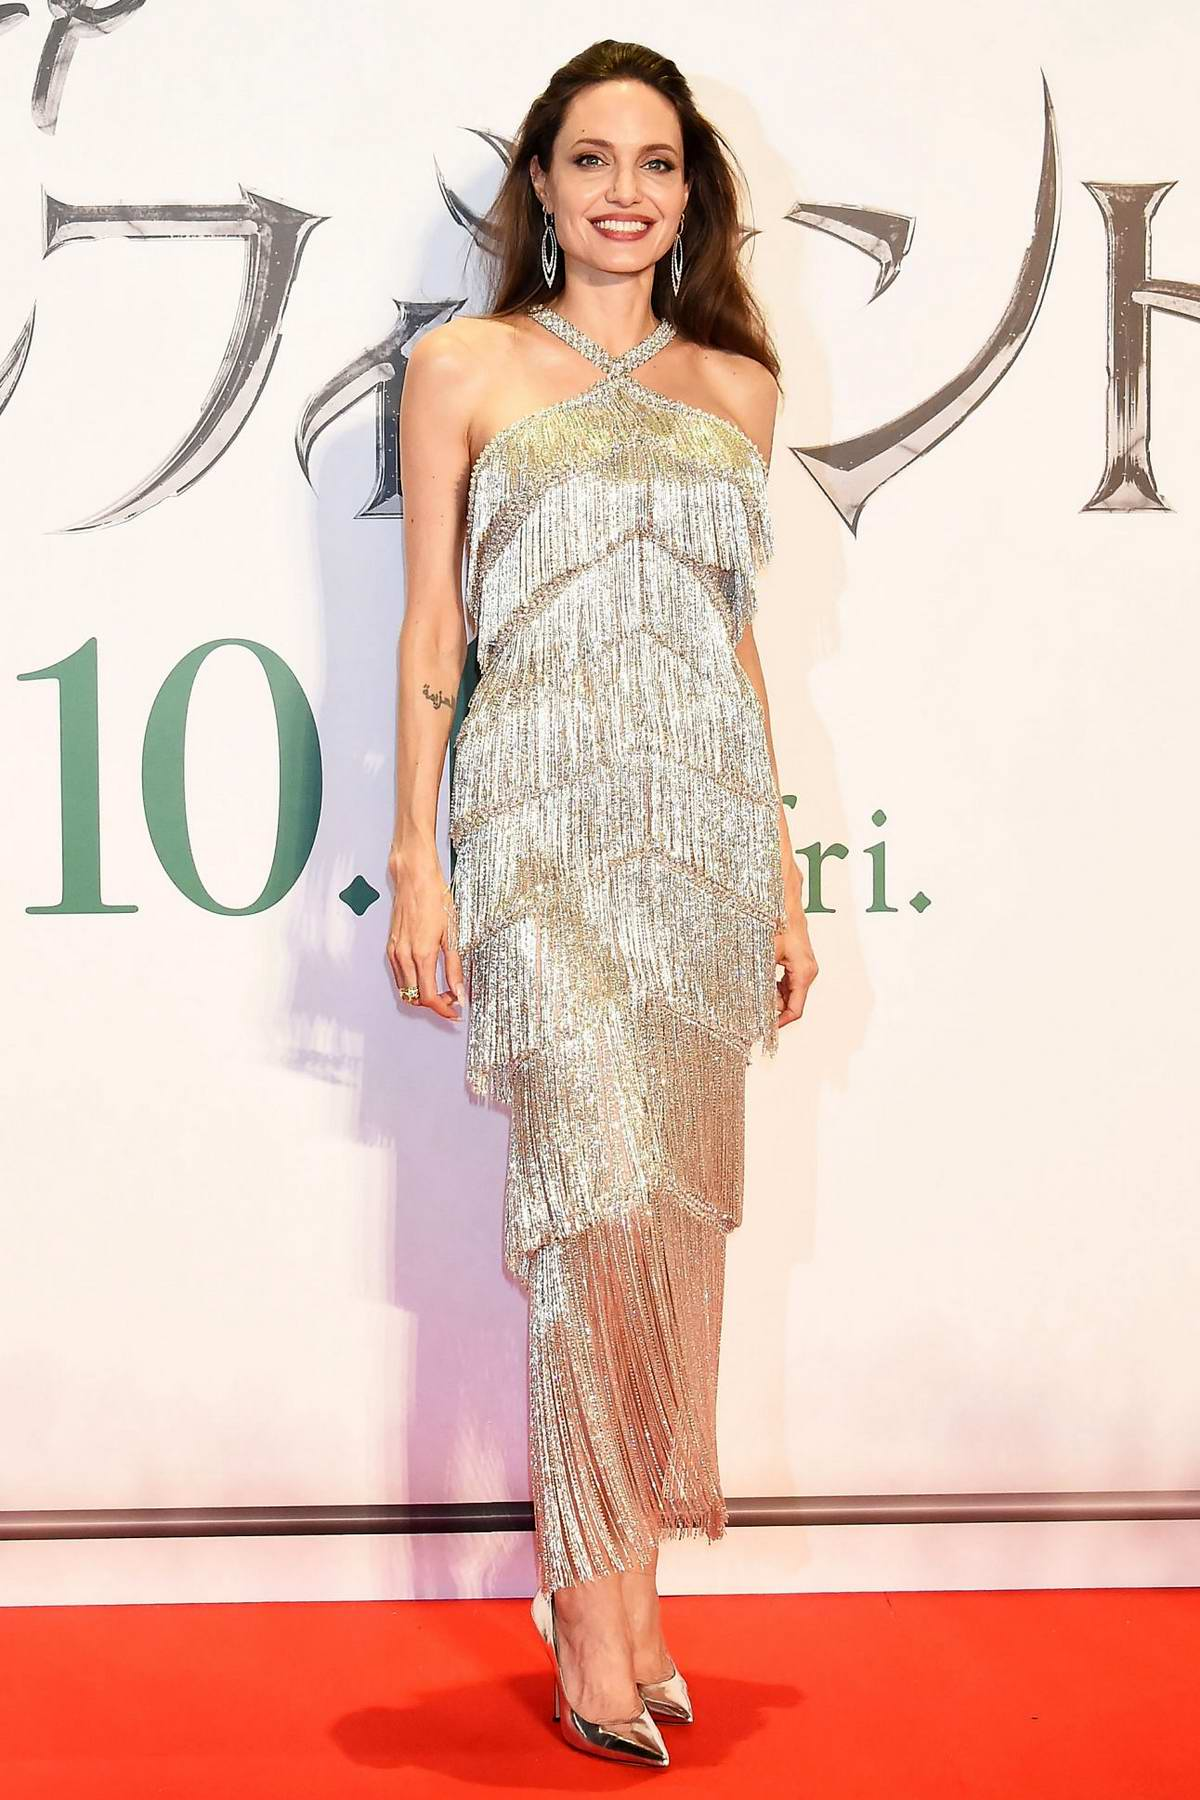 Angelina Jolie attends the Japan premiere of 'Maleficent: Mistress of Evil' at Roppongi Hills arena in Tokyo, Japan